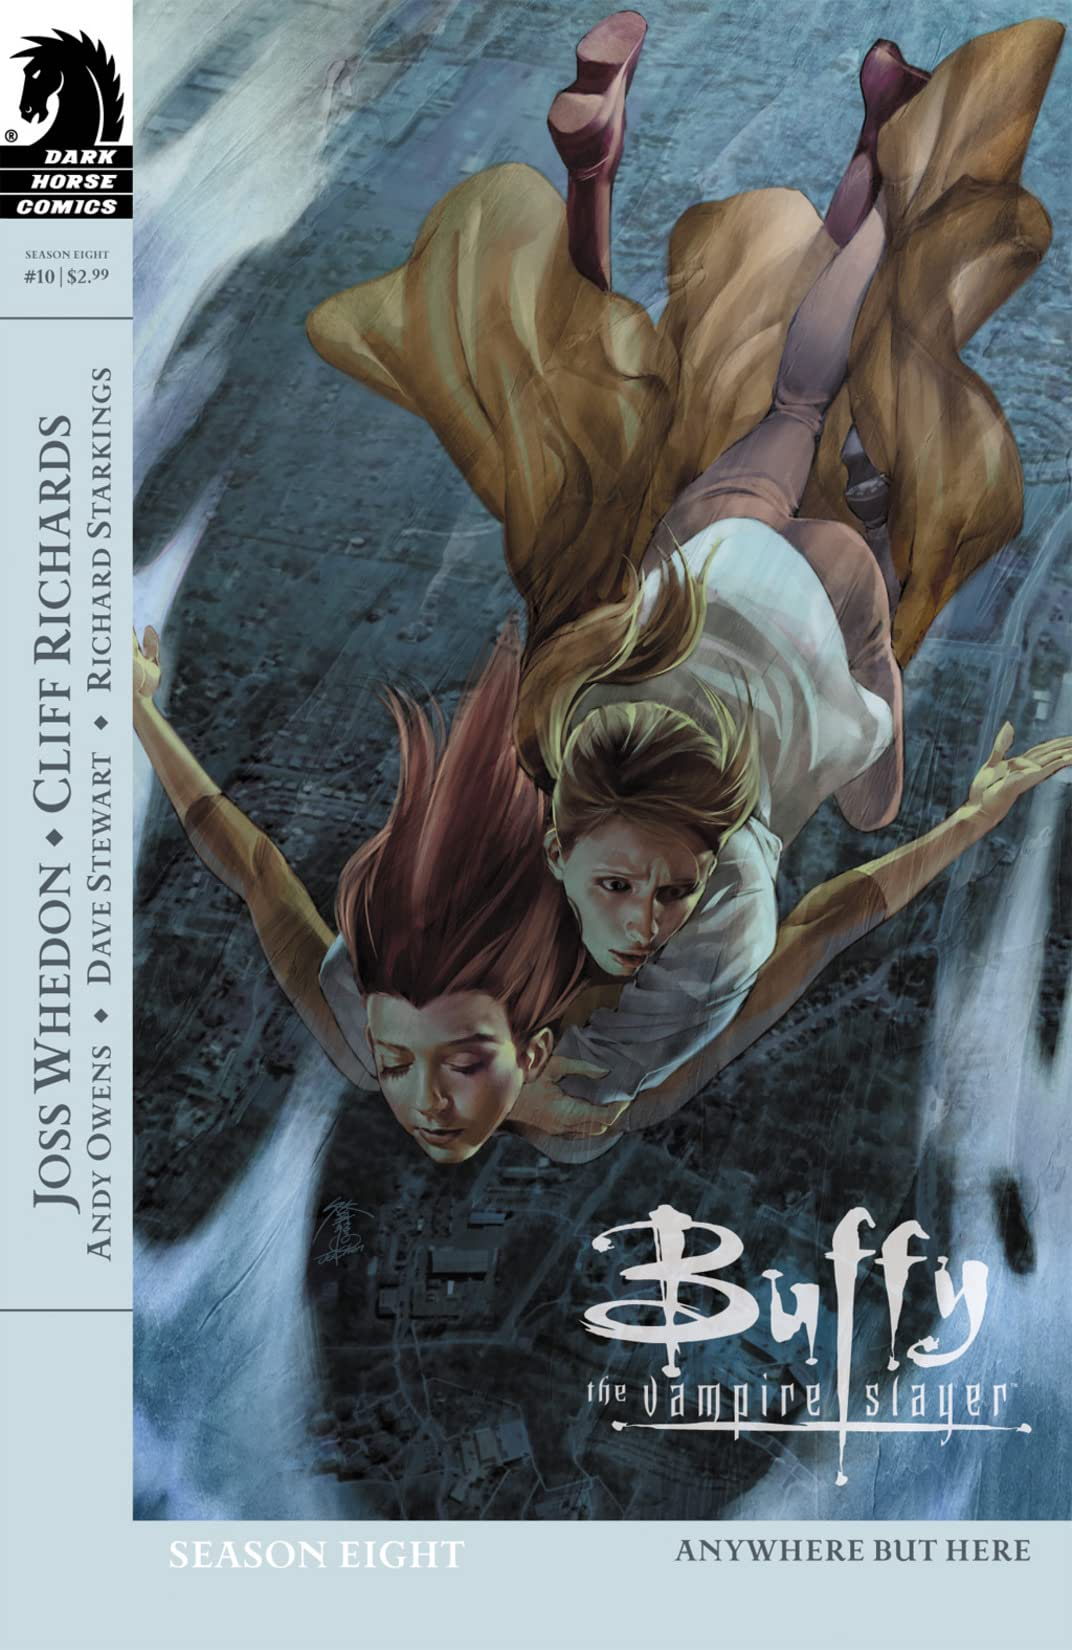 Buffy the Vampire Slayer: Season 8 #10